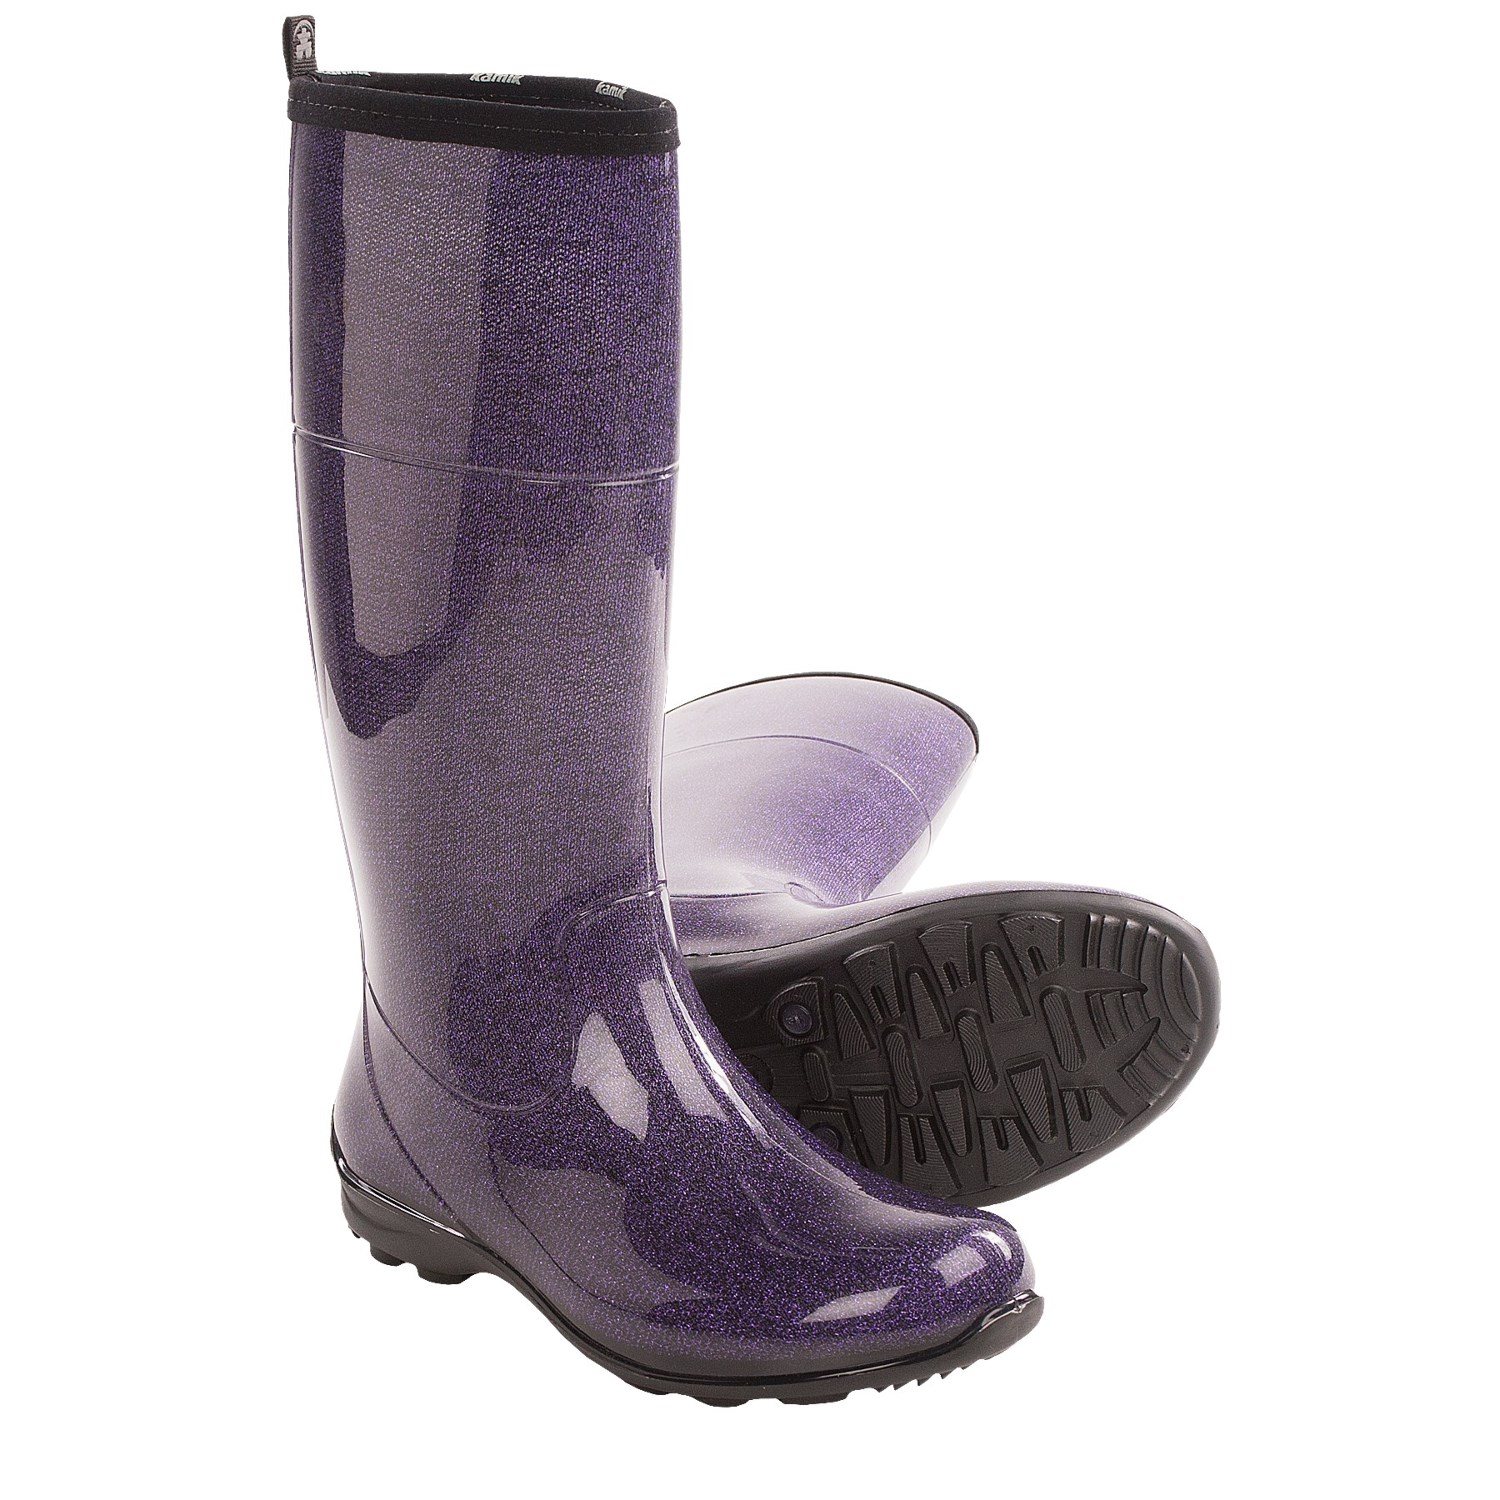 New These BOGS&186 100% Waterproof Lightweight Rubber Boots Are Perfect For Rainy Days, Gardening And Outdoor Chores Theyre The Perfect Lightweight Puddle Jumper In Fun Fashion Designs BOGS&186 Signature Pullon Handles And A Nonslip Outsole